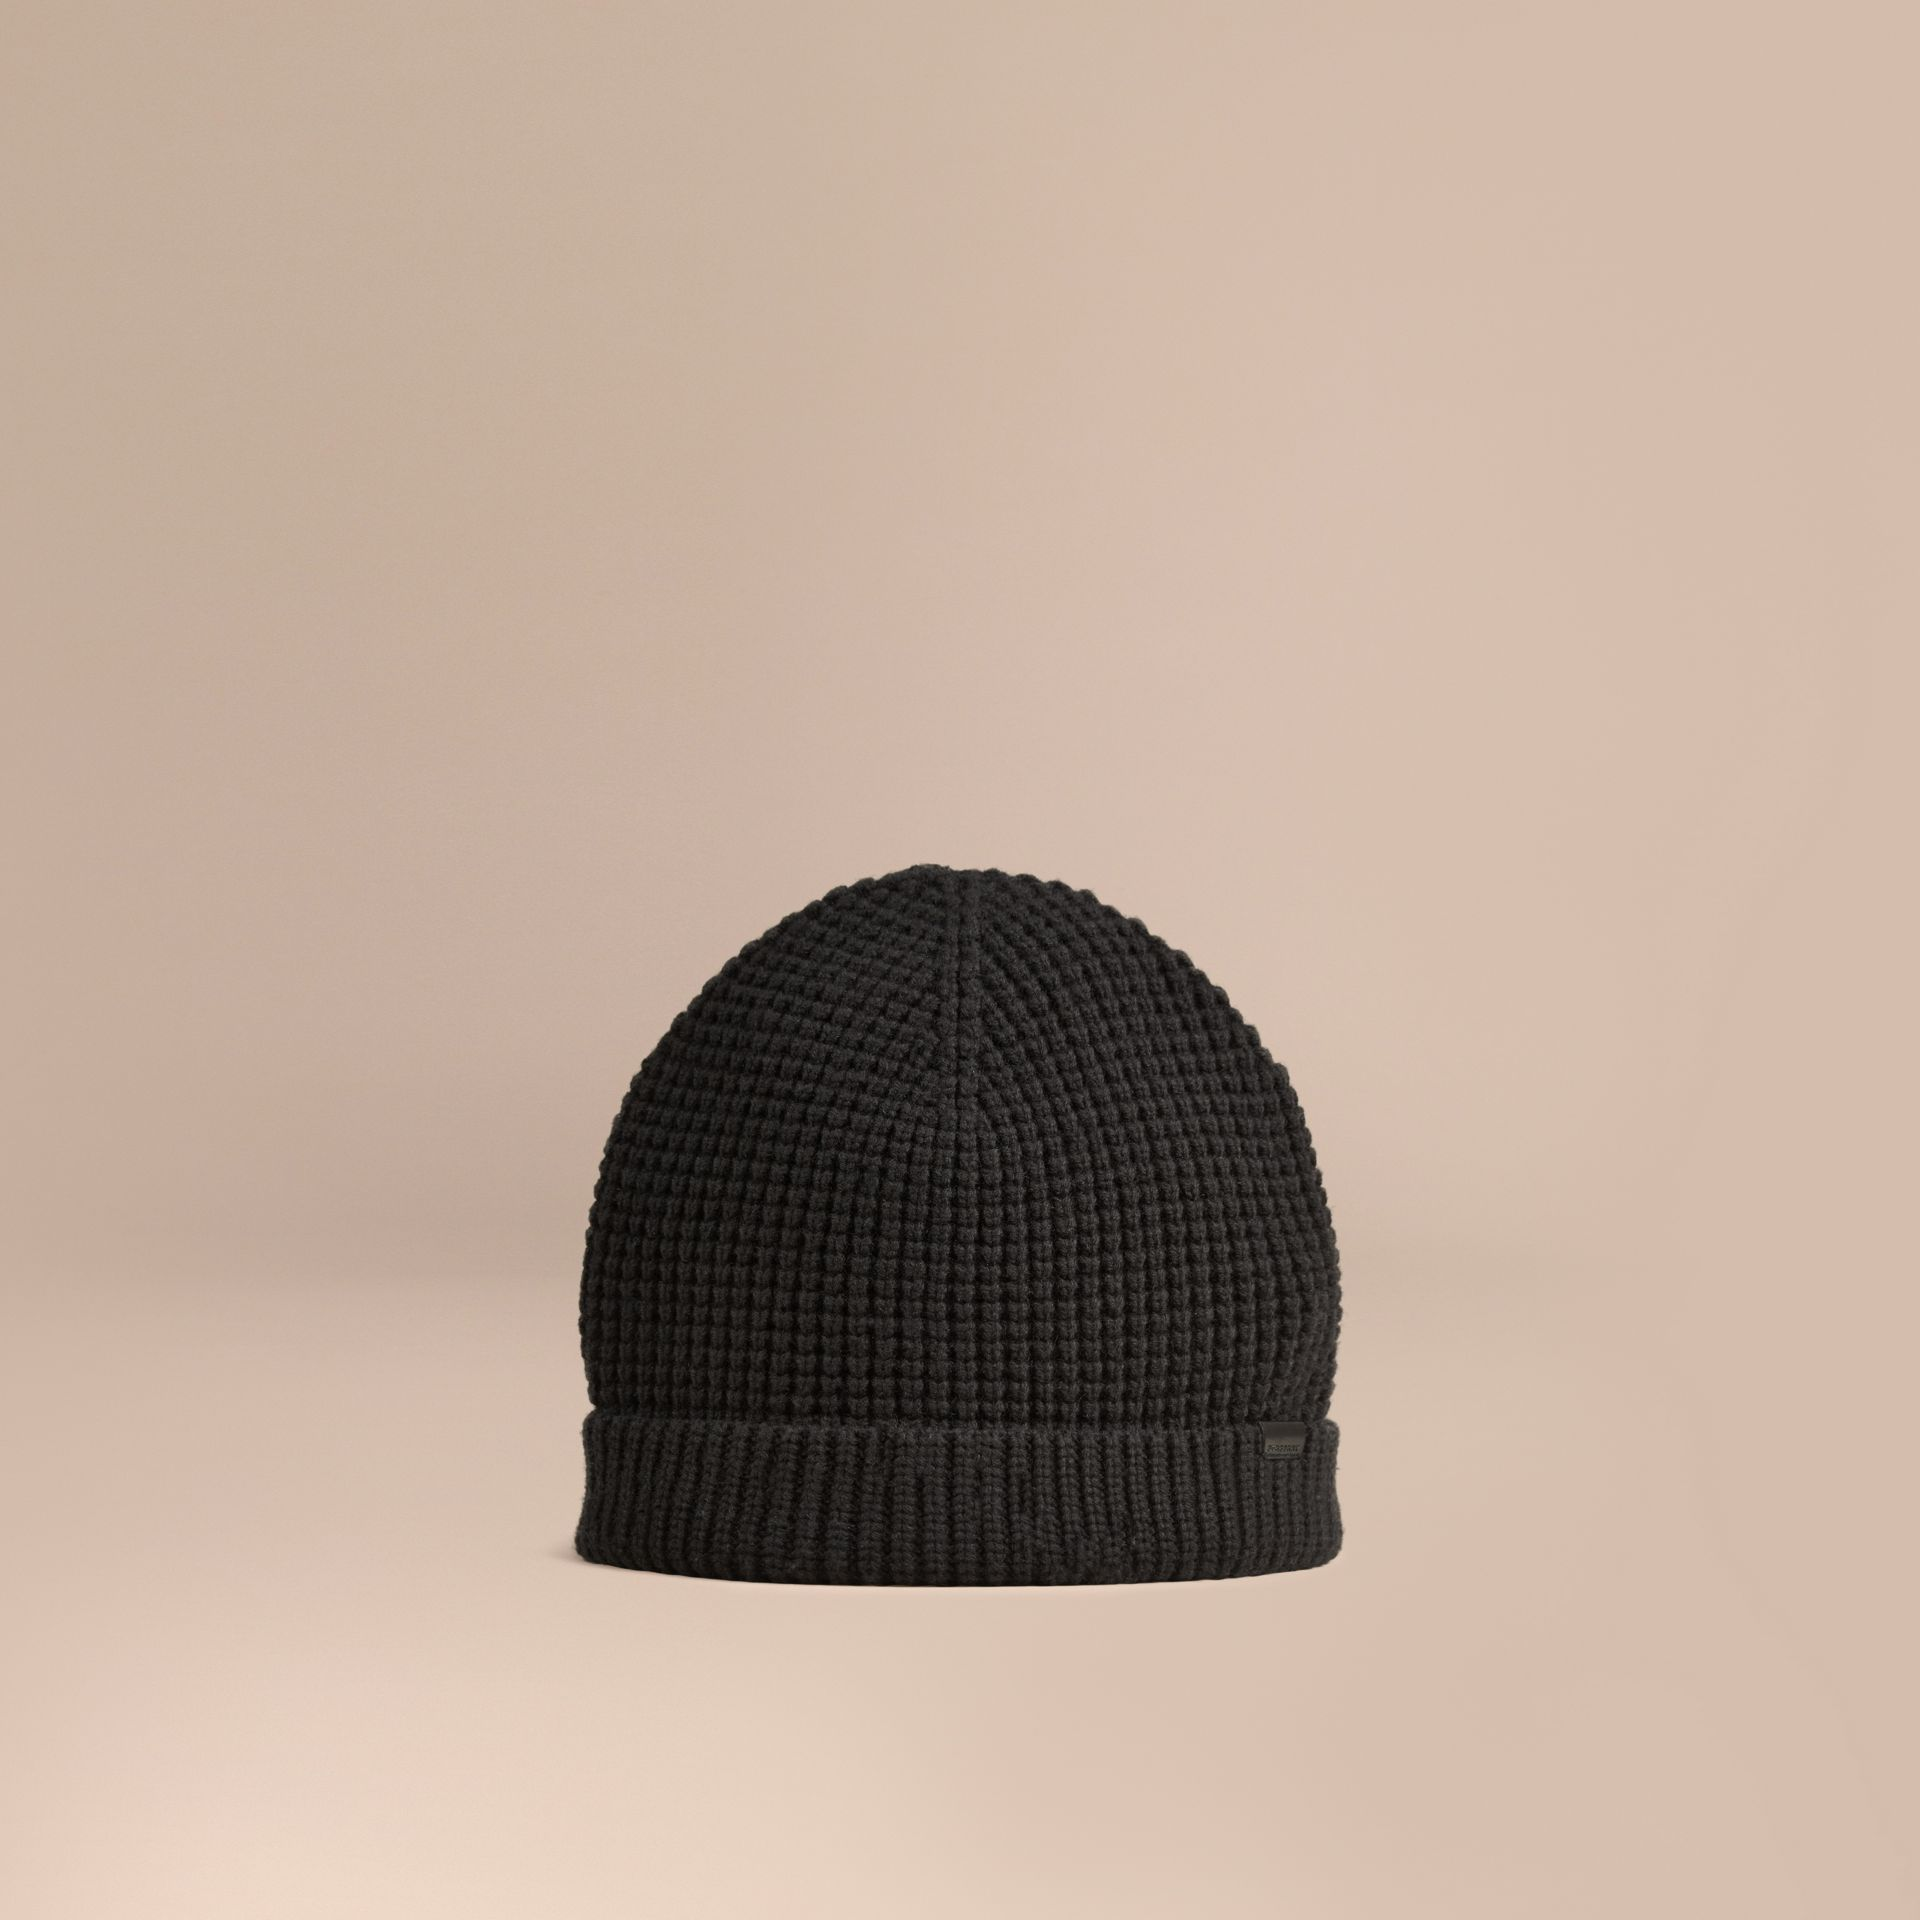 Cashmere Blend Waffle Knit Beanie in Black - Men | Burberry Canada - gallery image 1